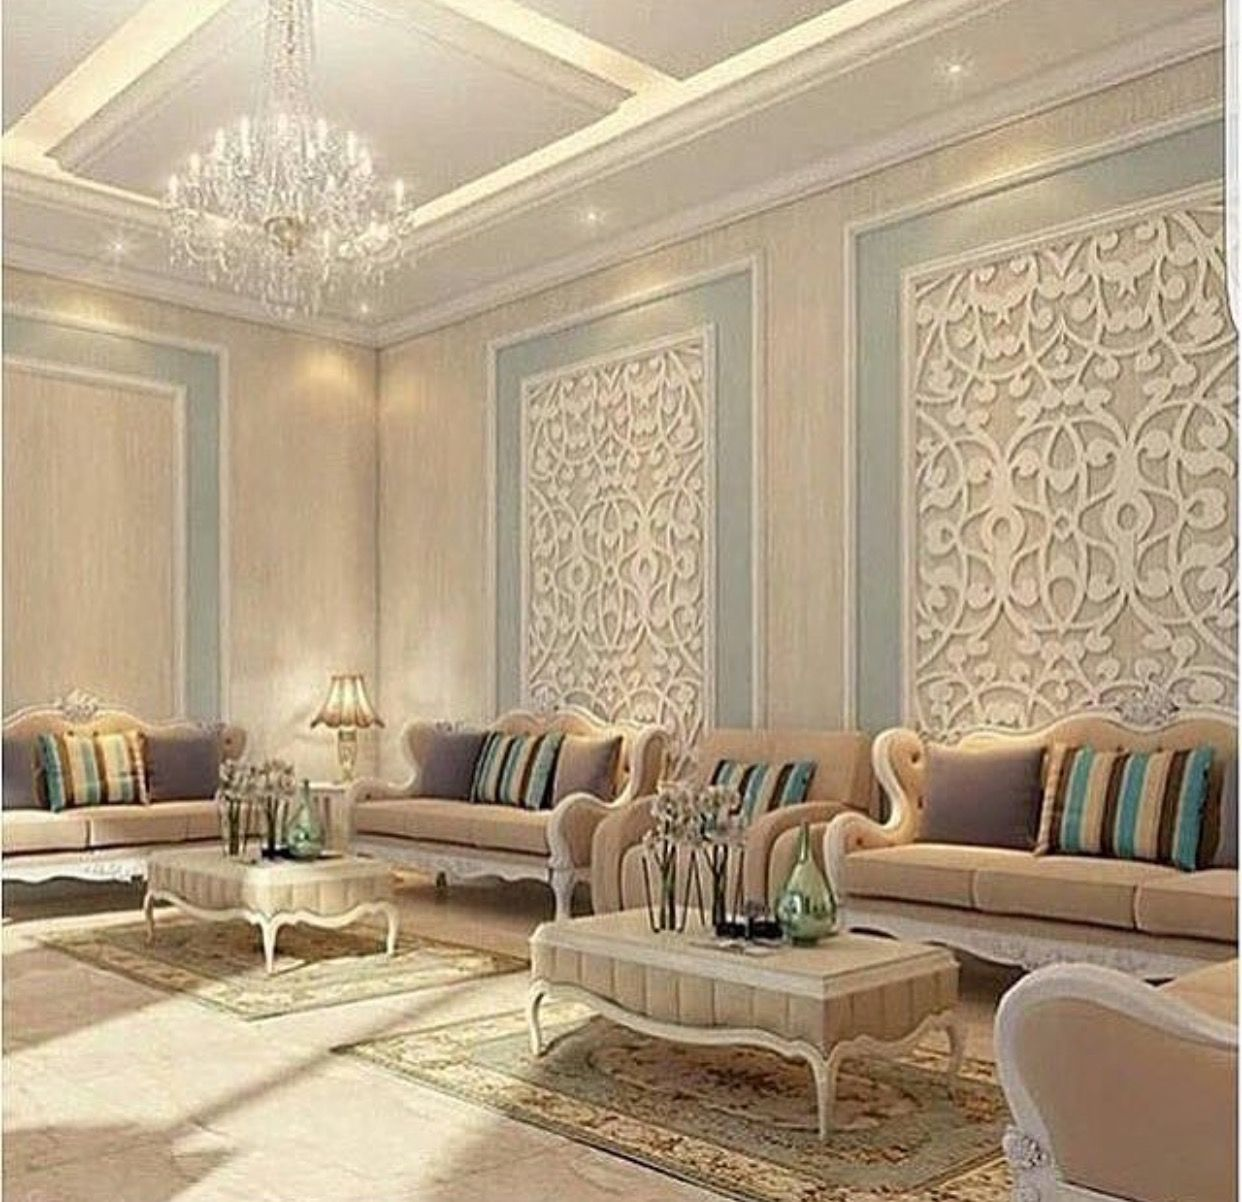 This aould be really good for a formal living room design for Formal living room